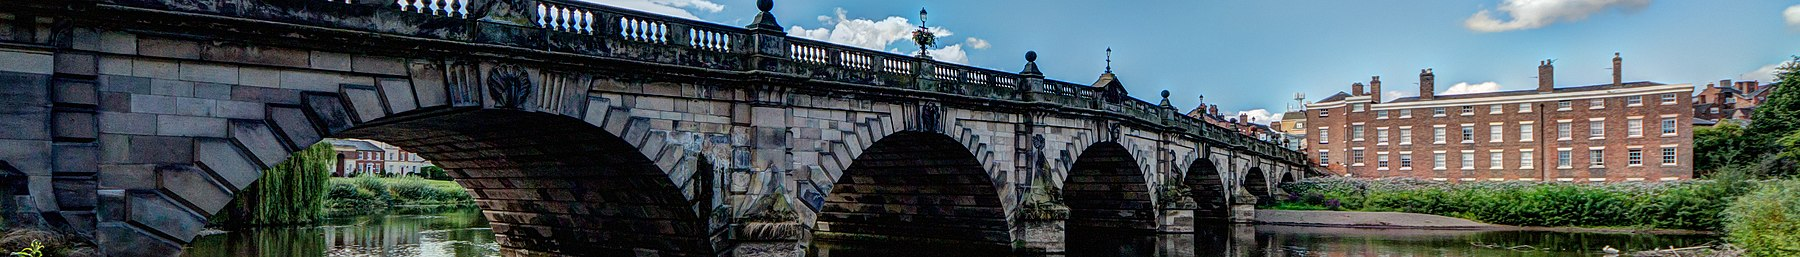 Wikivoyage banner Shrewsbury English Bridge.jpg